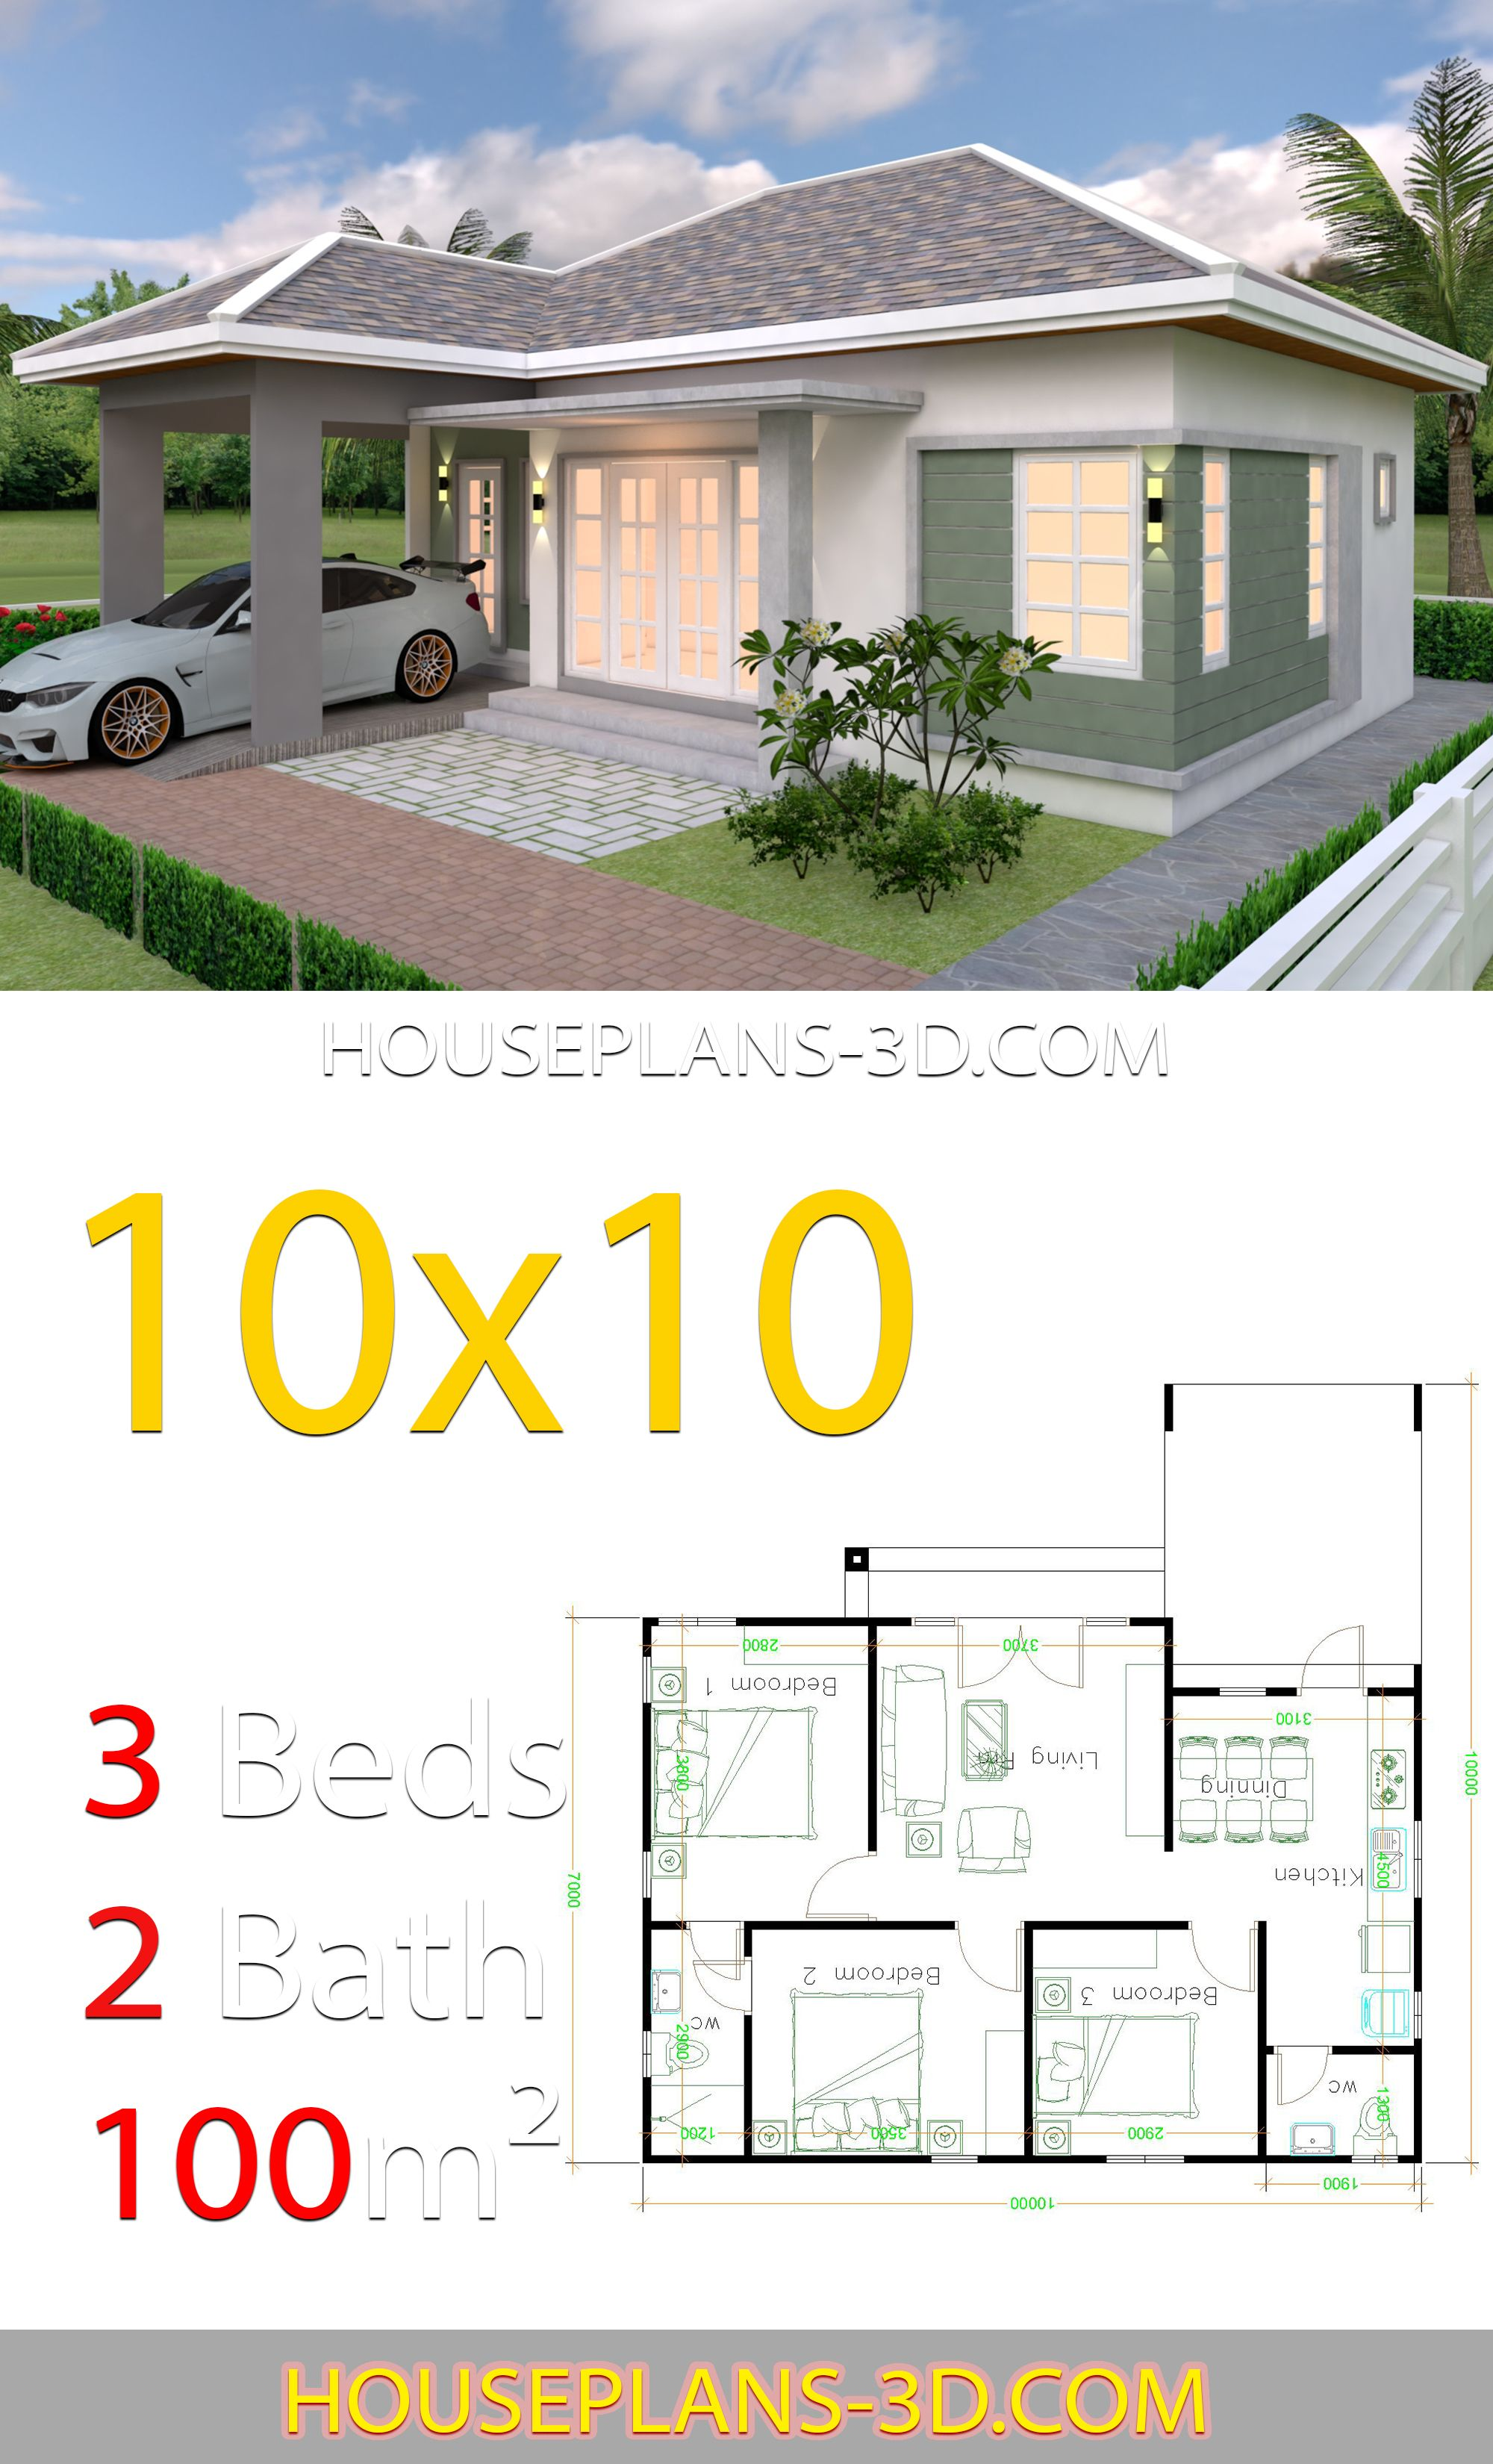 Interior House Design Plans 10x10 With 3 Bedrooms Full Plans House Plans 3d In 2020 Bungalow House Plans House Roof Simple House Design